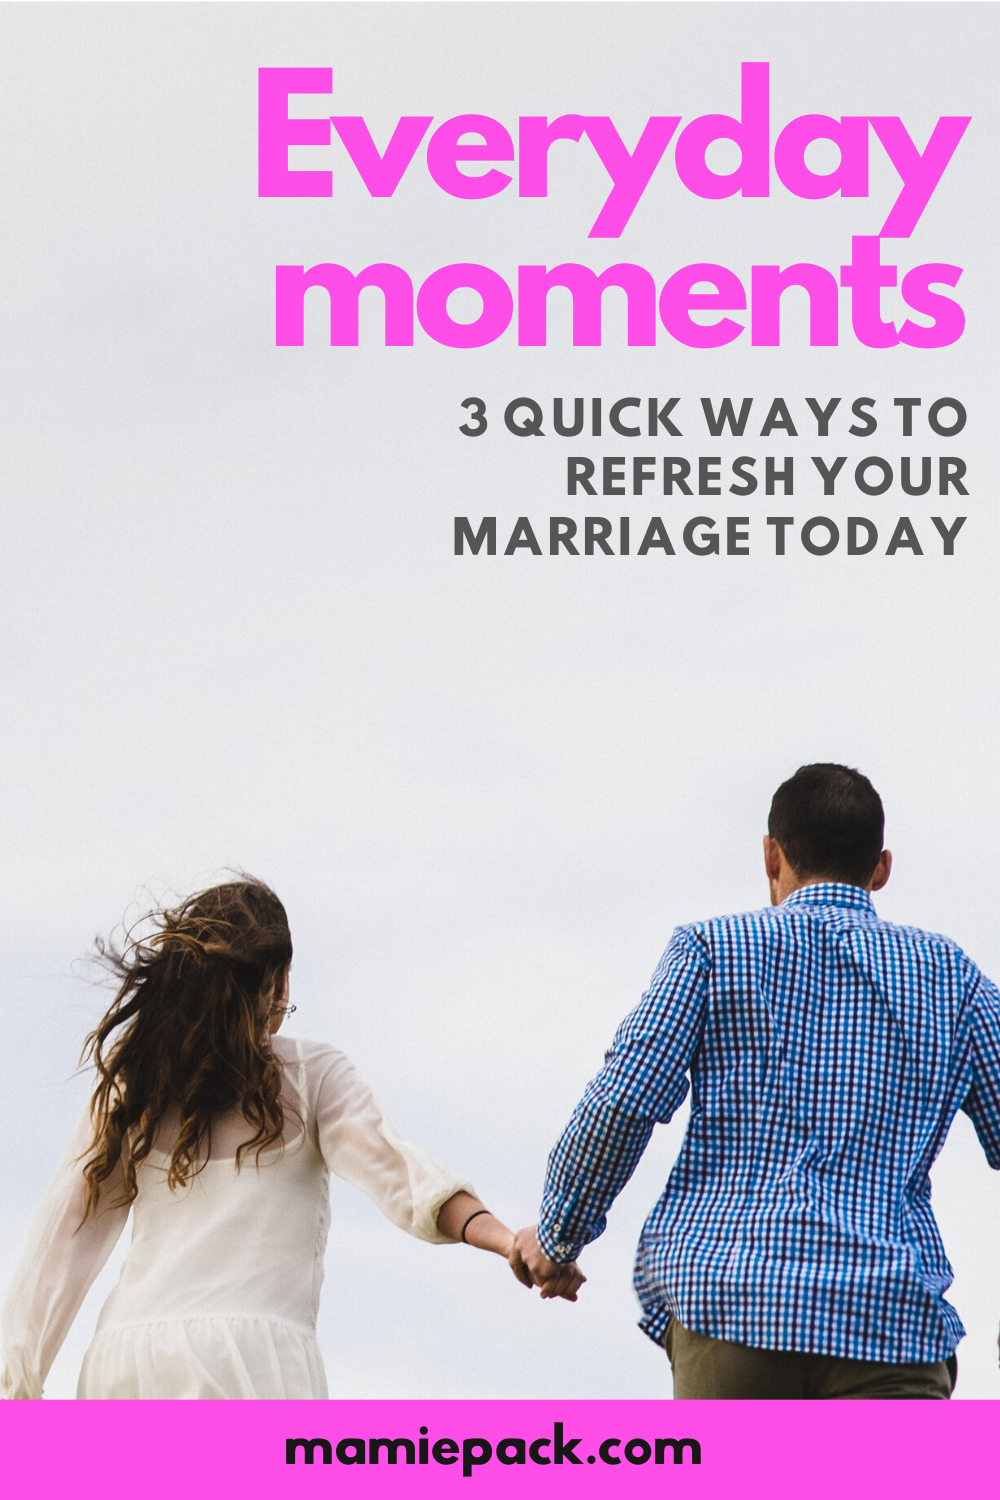 Building a healthy marriage is simple when we identify wasy to refresh our marriage.  Taking time to connect with your spouse in these 3 ways. #marriage #marriageadvice #relationshipadvice